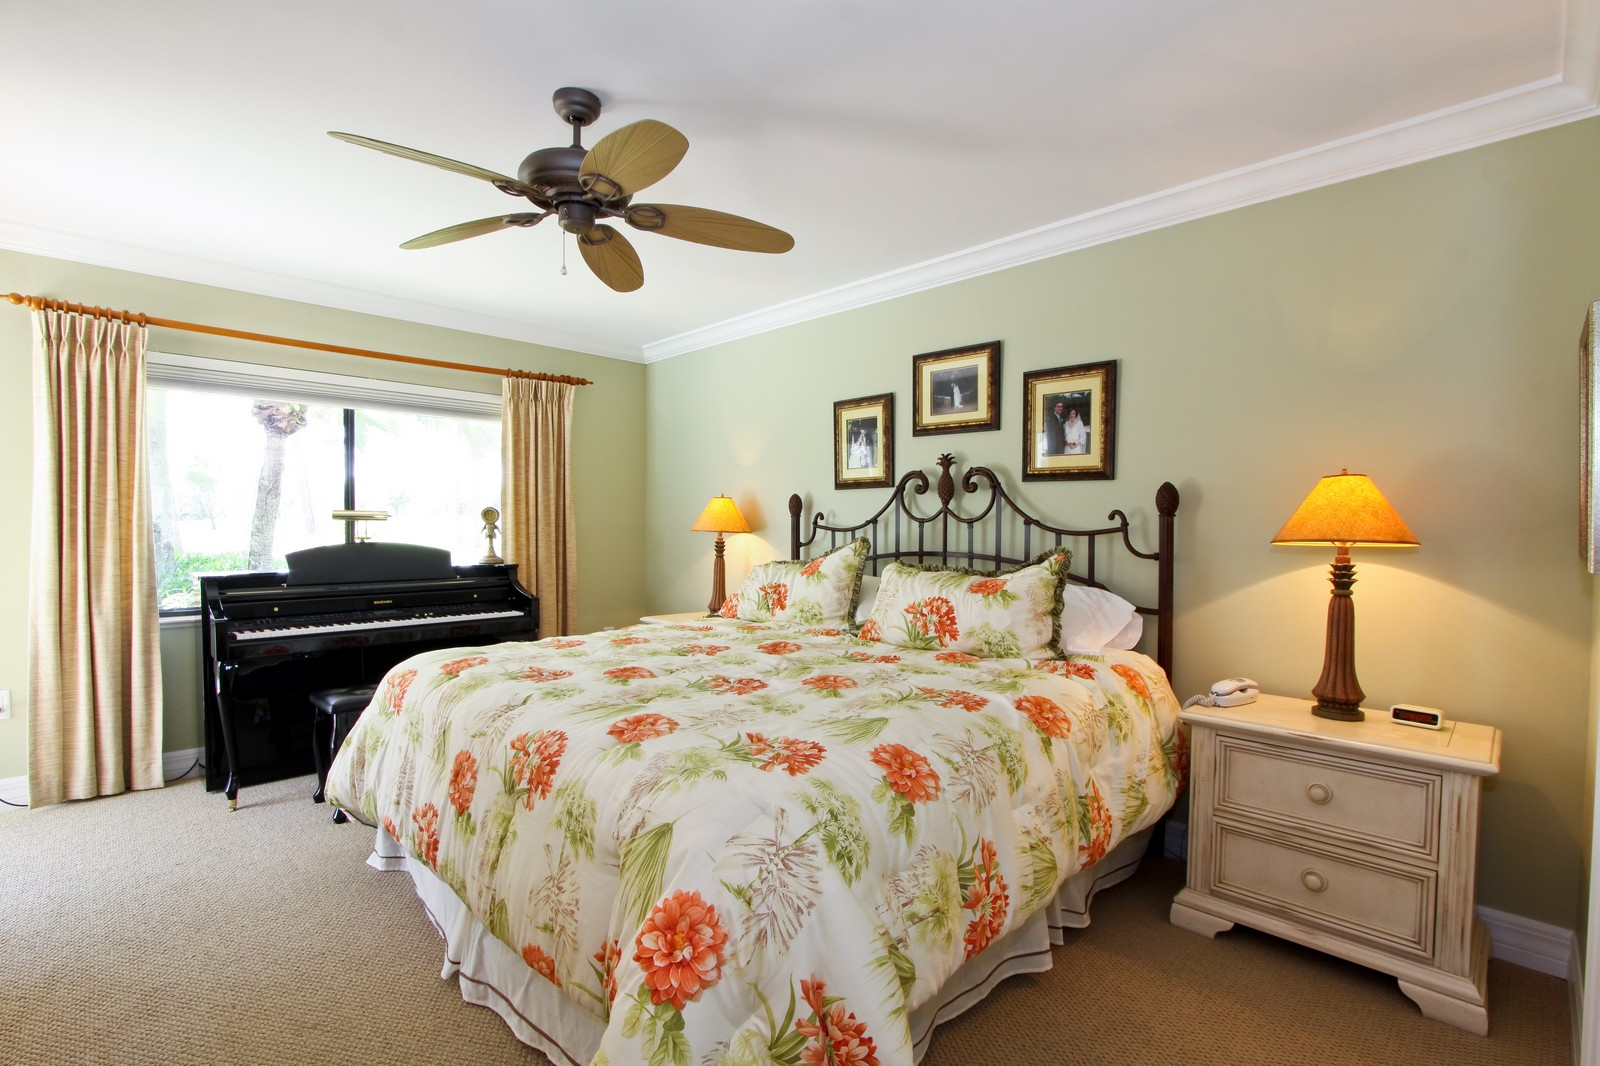 Real Estate Photography - 1986 Imperial GC Blvd, Naples, FL, 34110 - Guest Bedroom